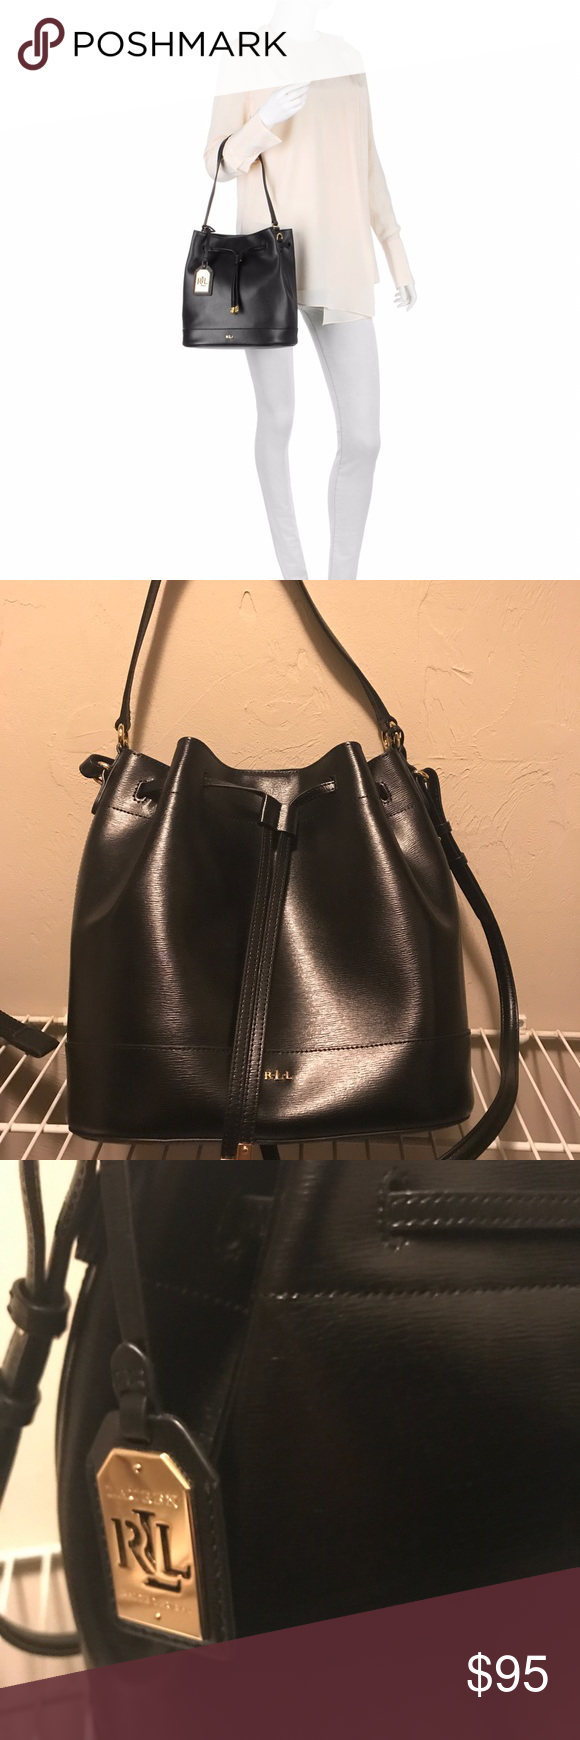 5fe8e83d68a1 Ralph Lauren Tate Black Leather Bucket Handbag Ralph Lauren RLL Tate black  leather bucket drawstring tote  hand bag  purse. Made of textured saffiano  ...